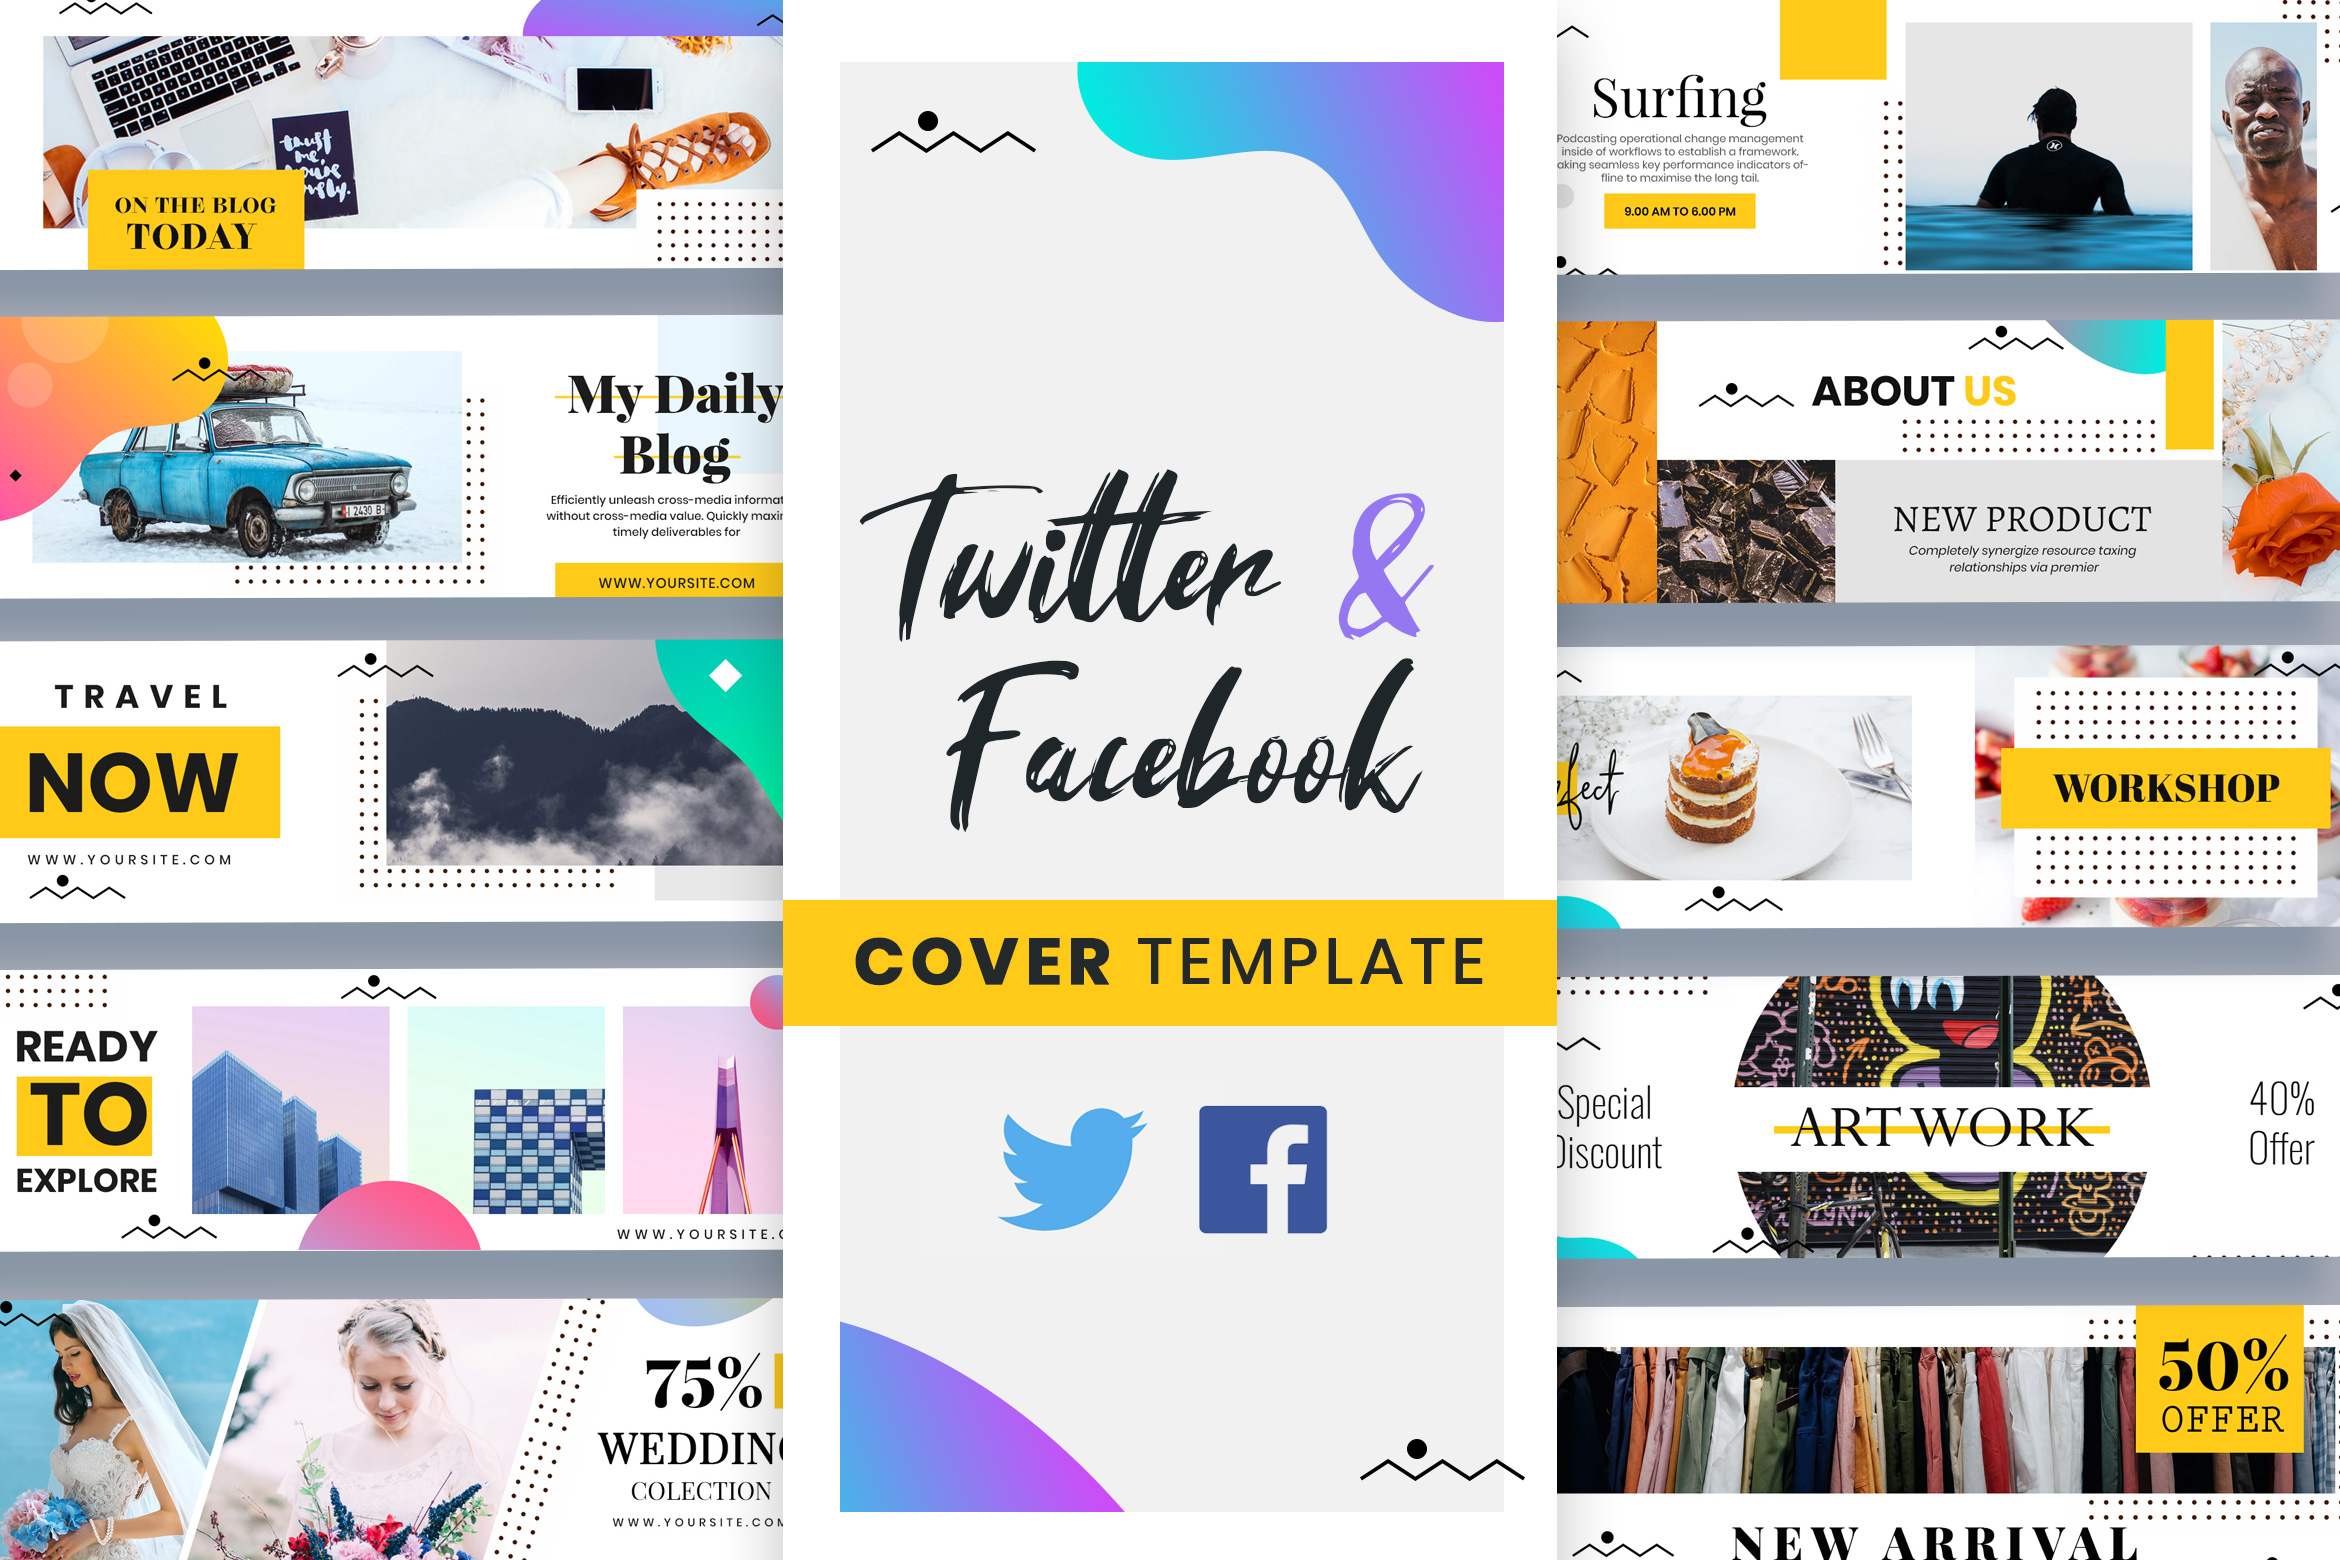 Twitter & Facebook Cover Templates